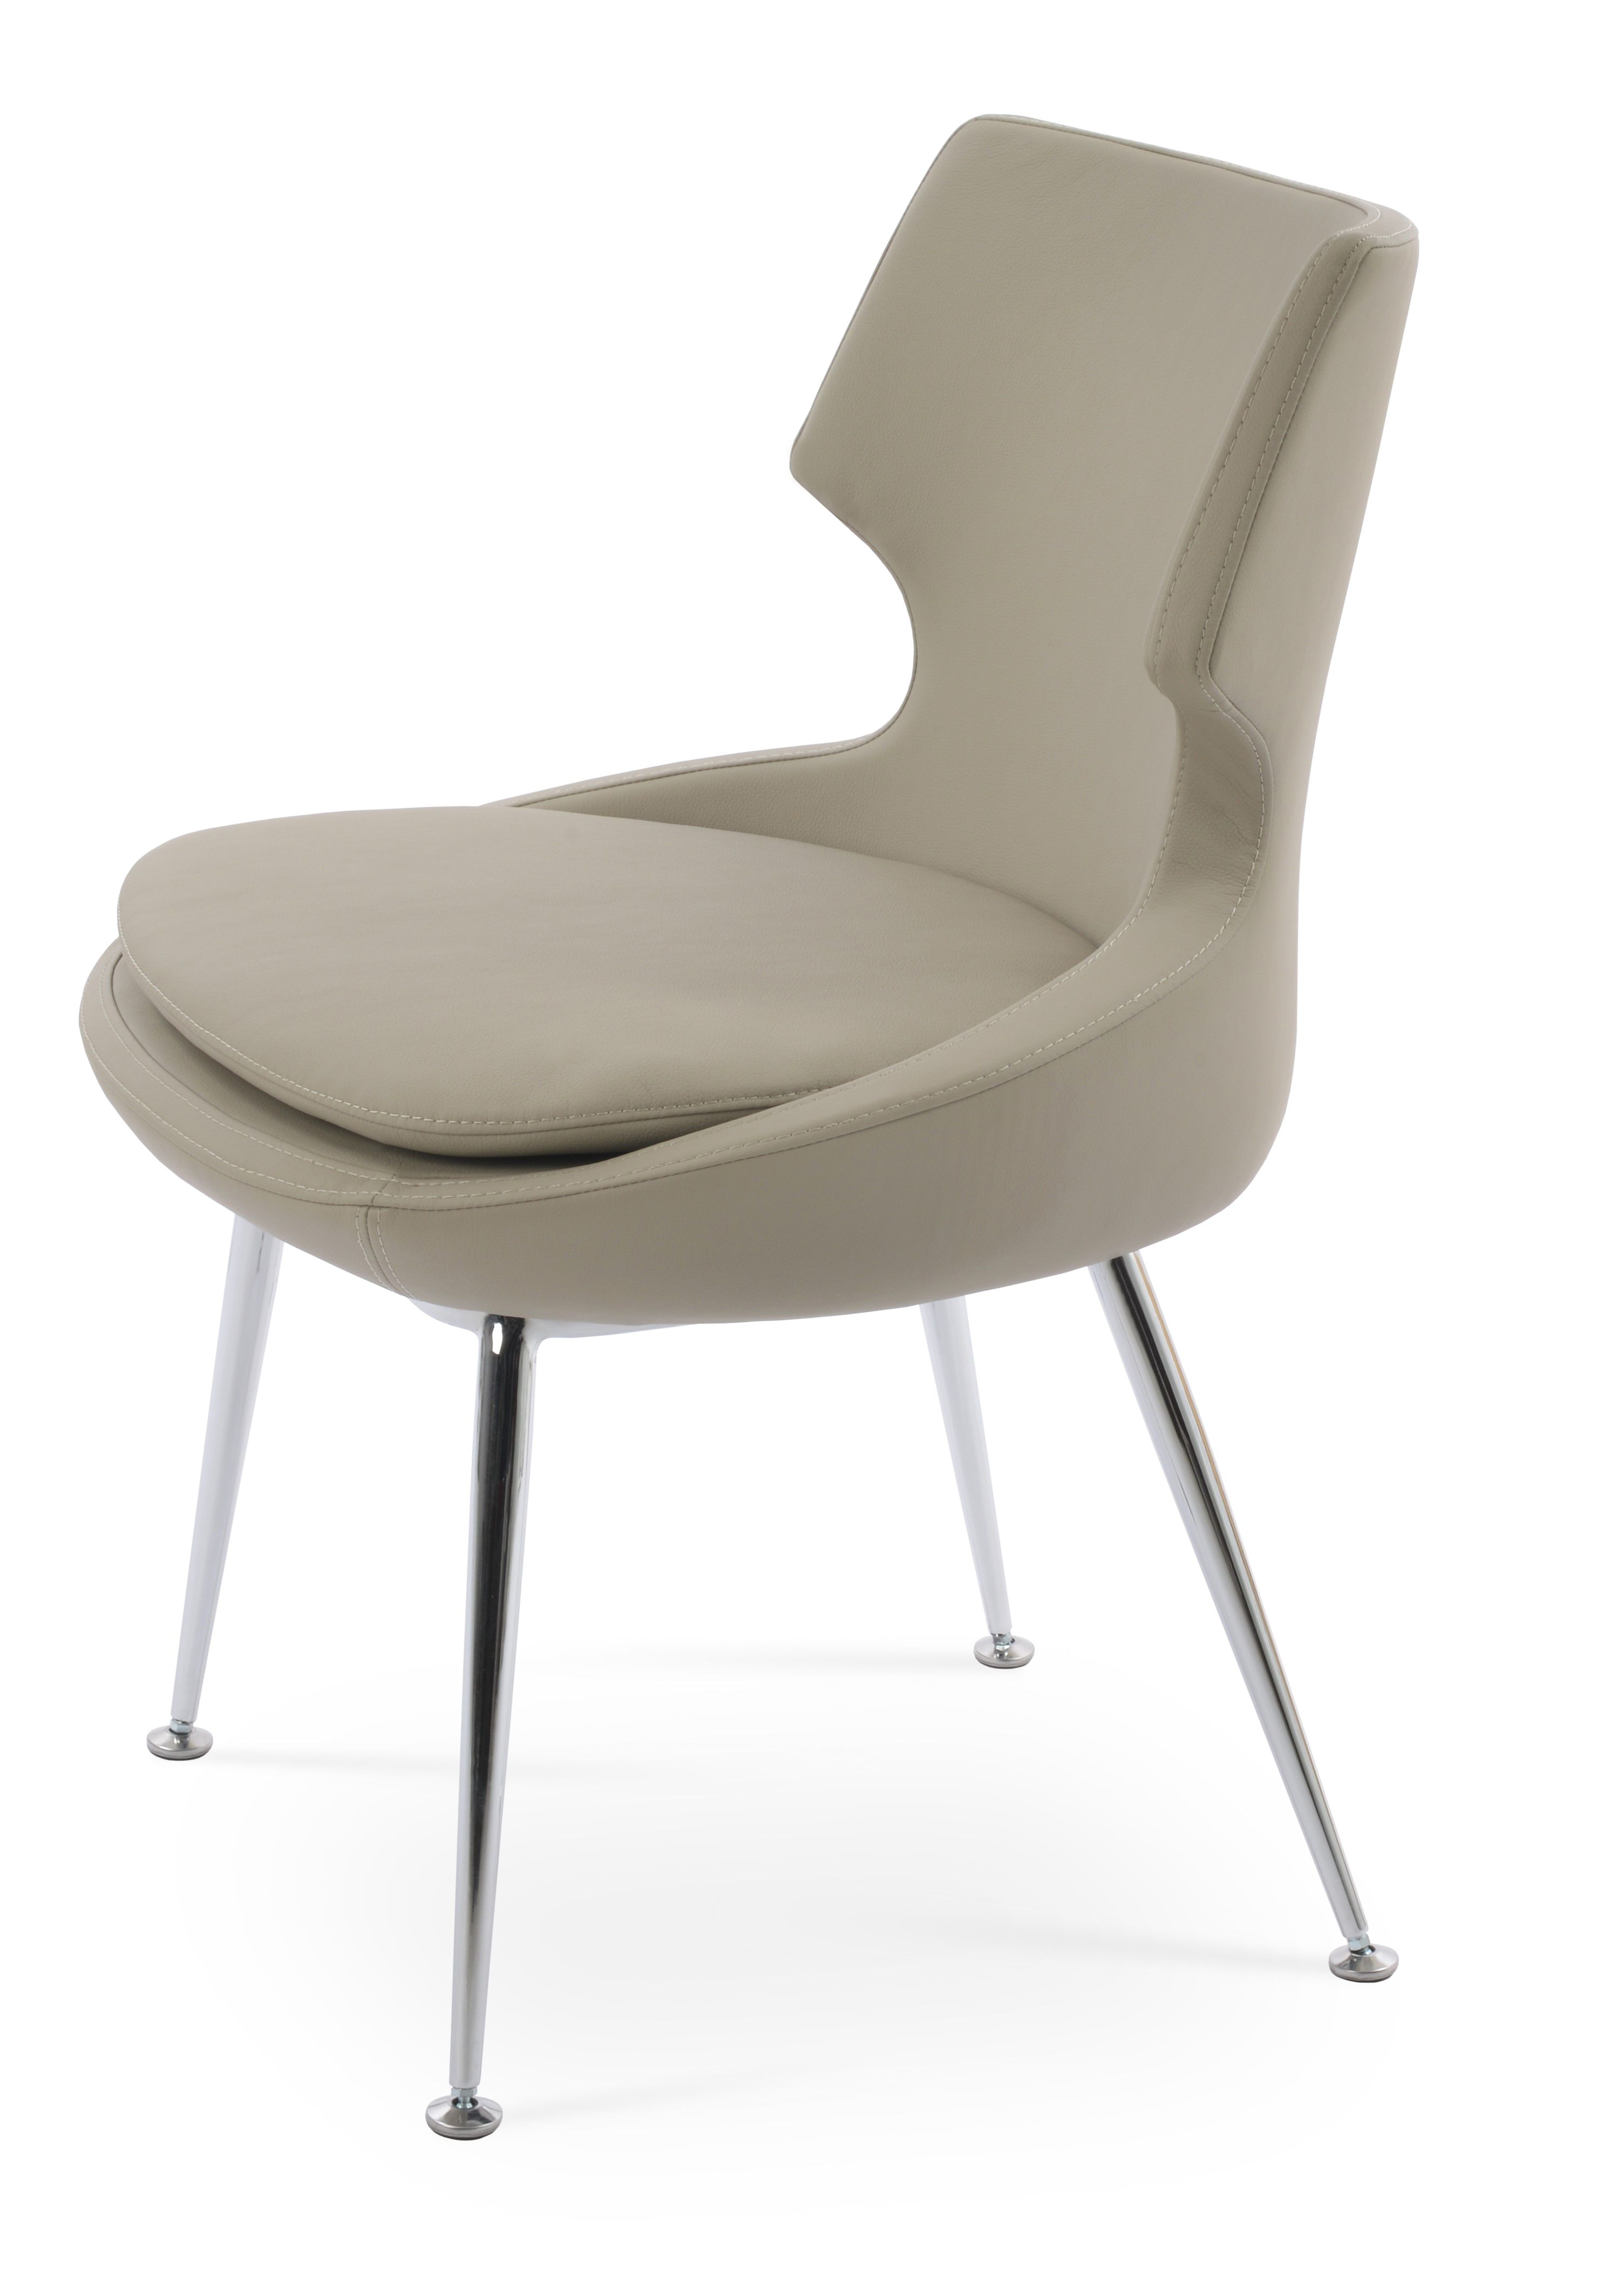 Patara Dining Chair Leather | SohoConcept